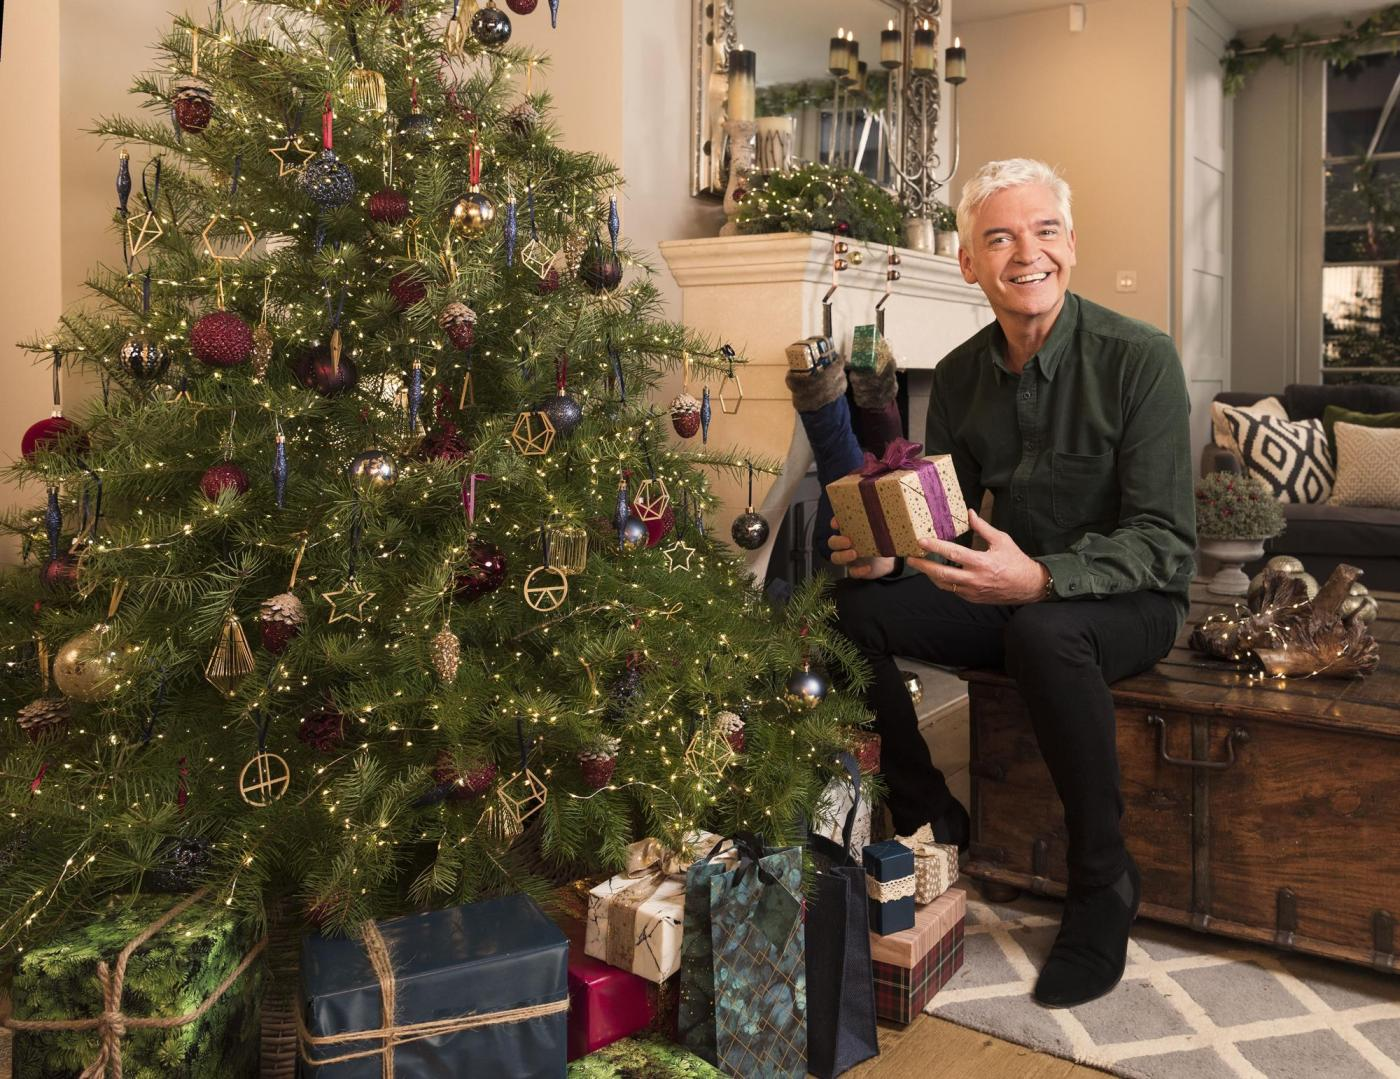 Itv Christmas 2020 Schofield's How To Spend It Well At Christmas will be the show we